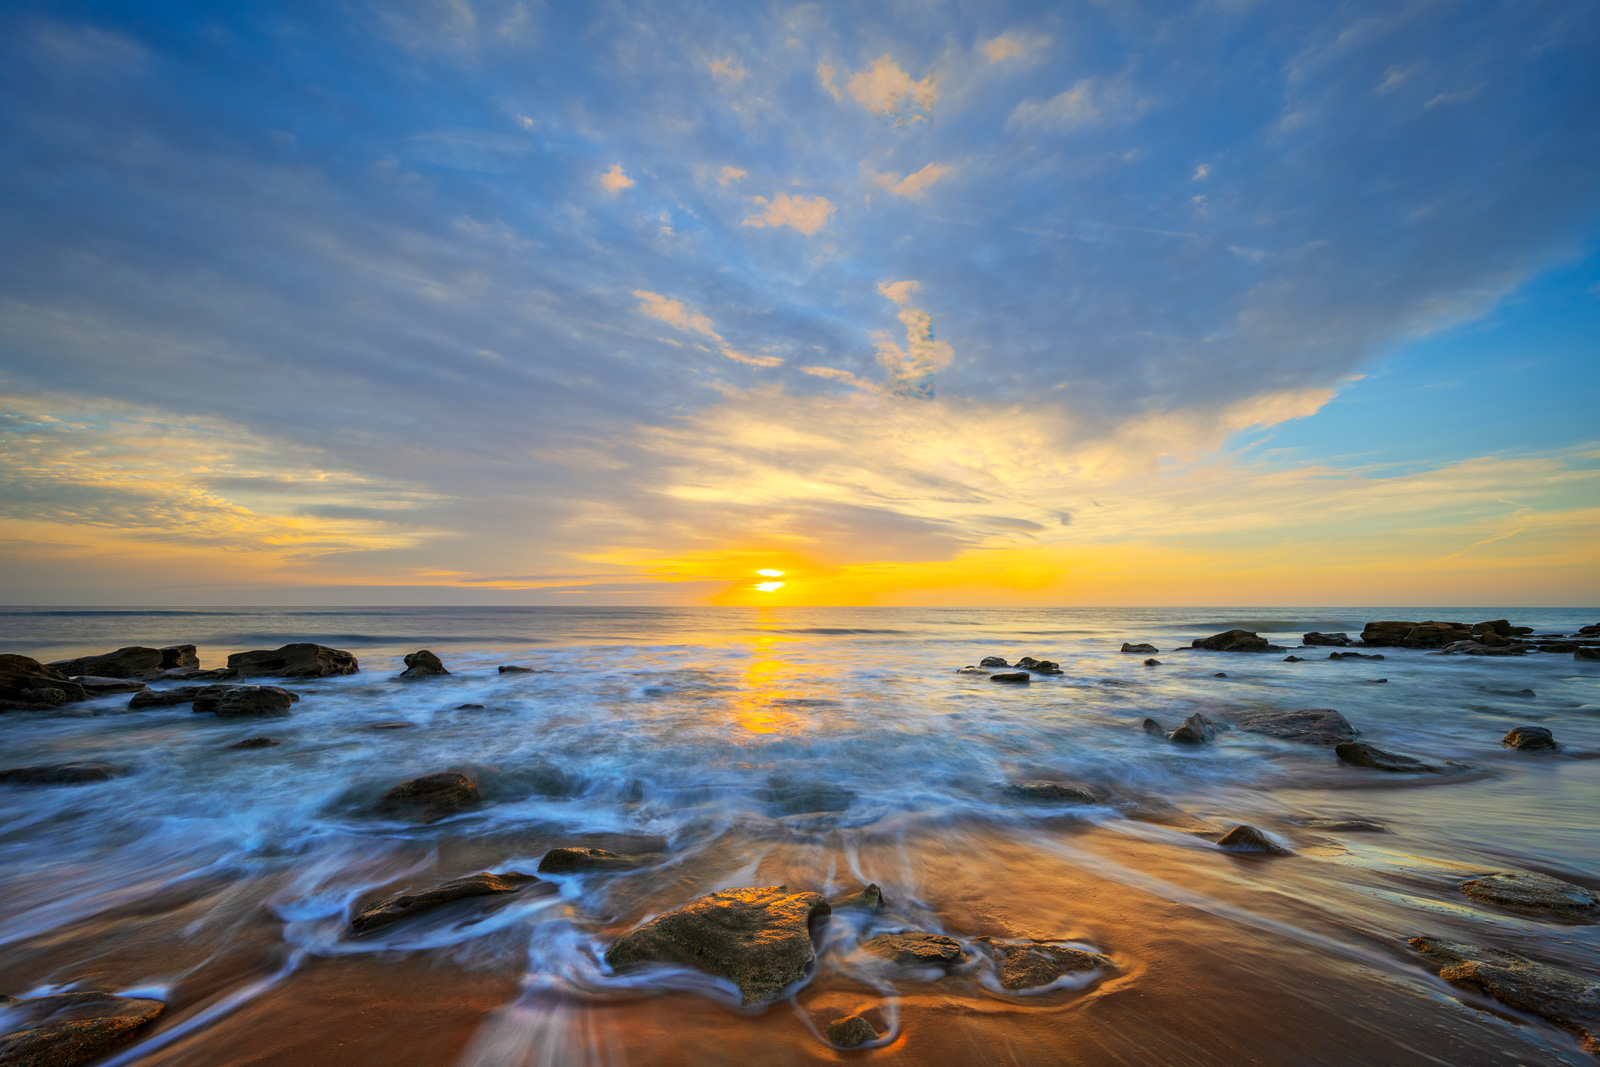 A Limited Edition, Fine Art photograph of sunrise over the Coquina Rocks on the beach at Washington Oaks State Park on the Atlantic...